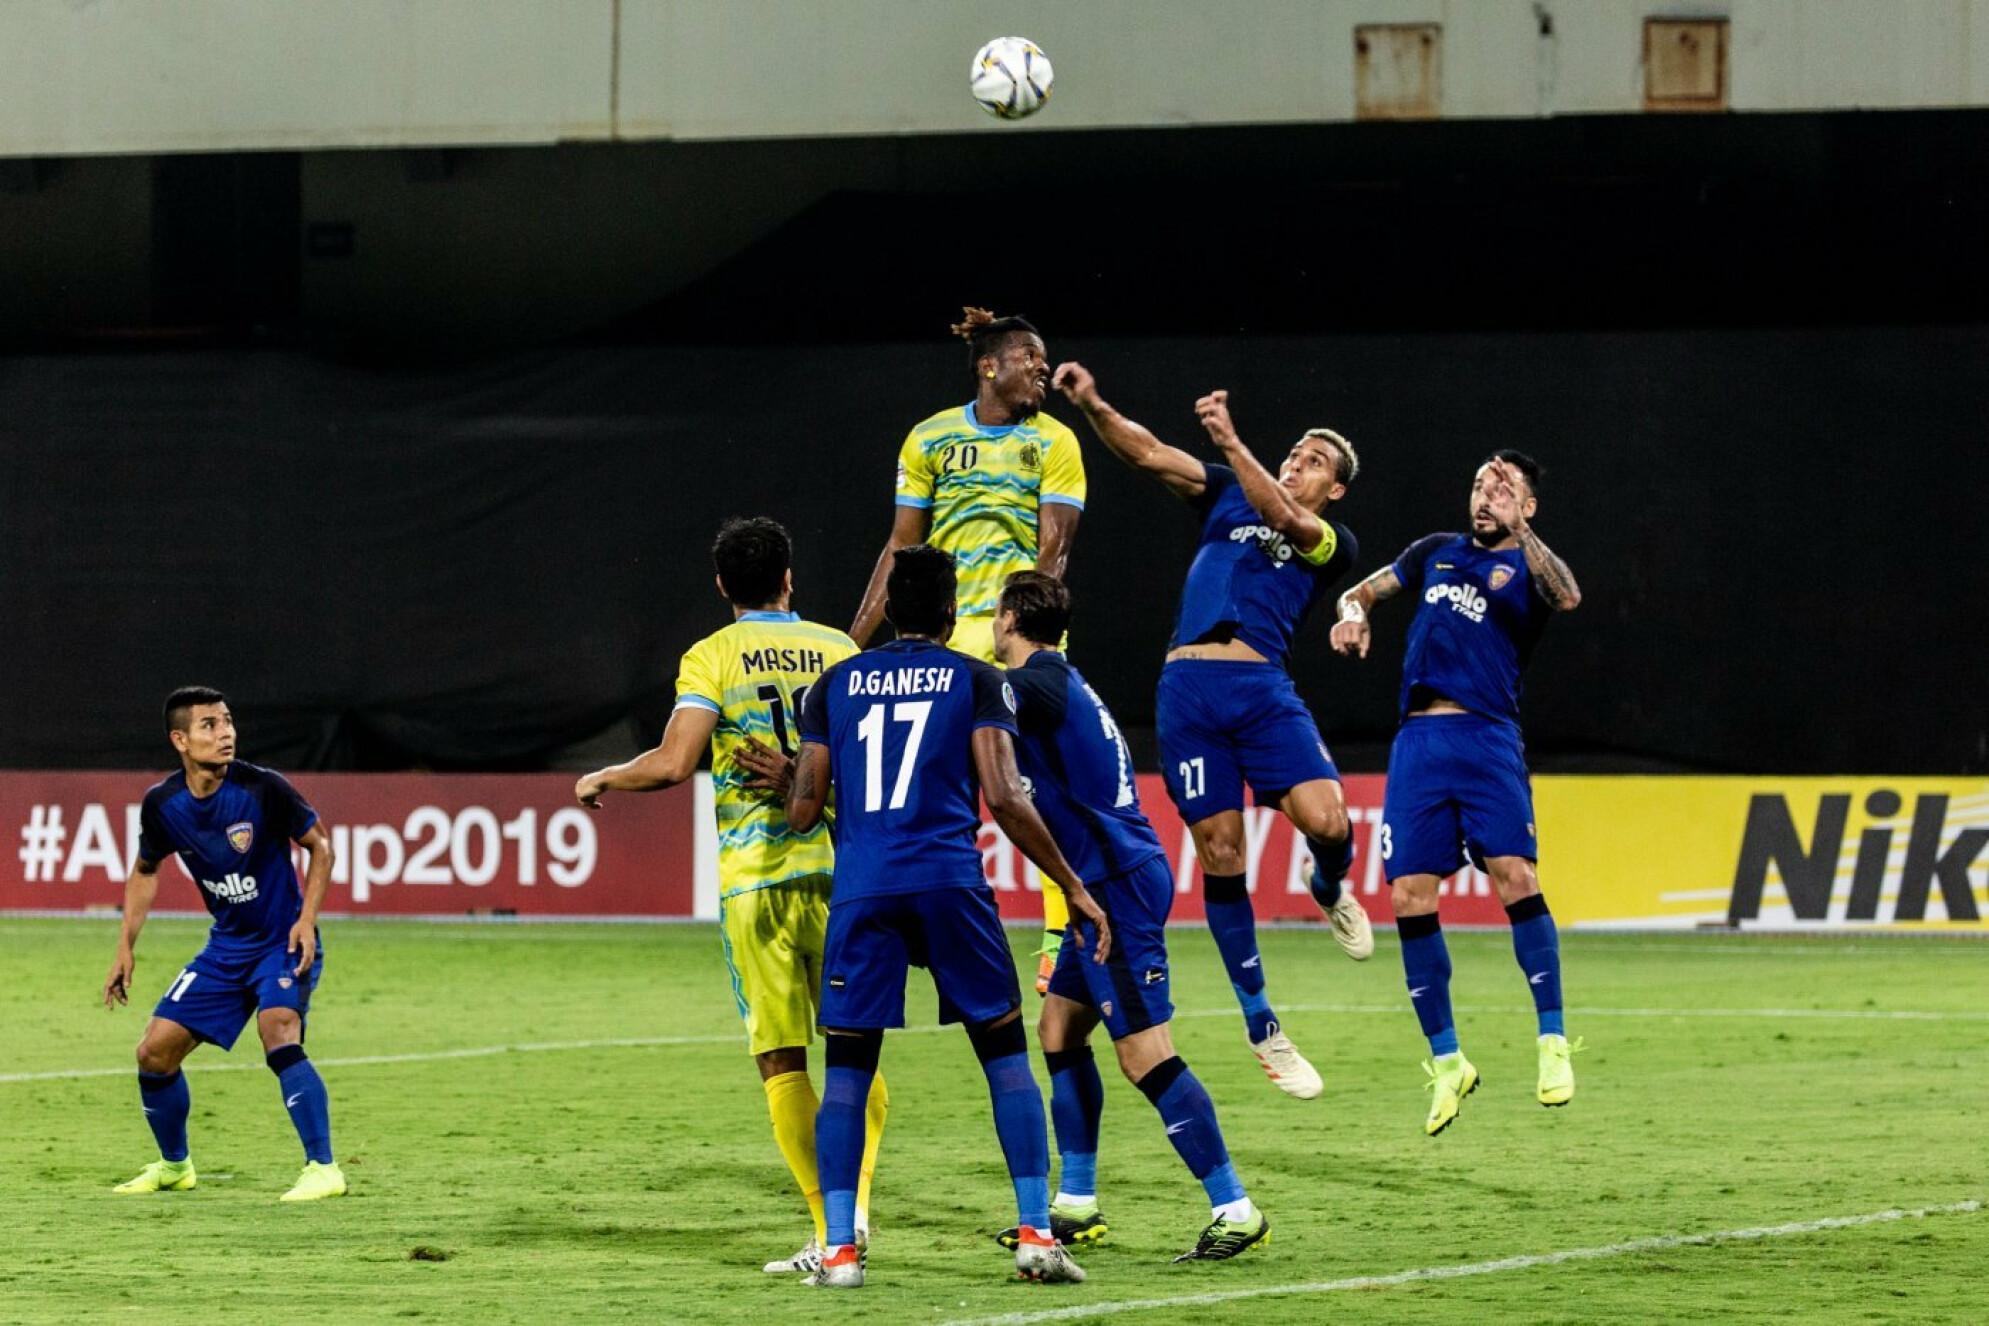 MATCH REPORT: Chennaiyin FC consolidate top spot with hard-fought win over Bangladesh's Abahani